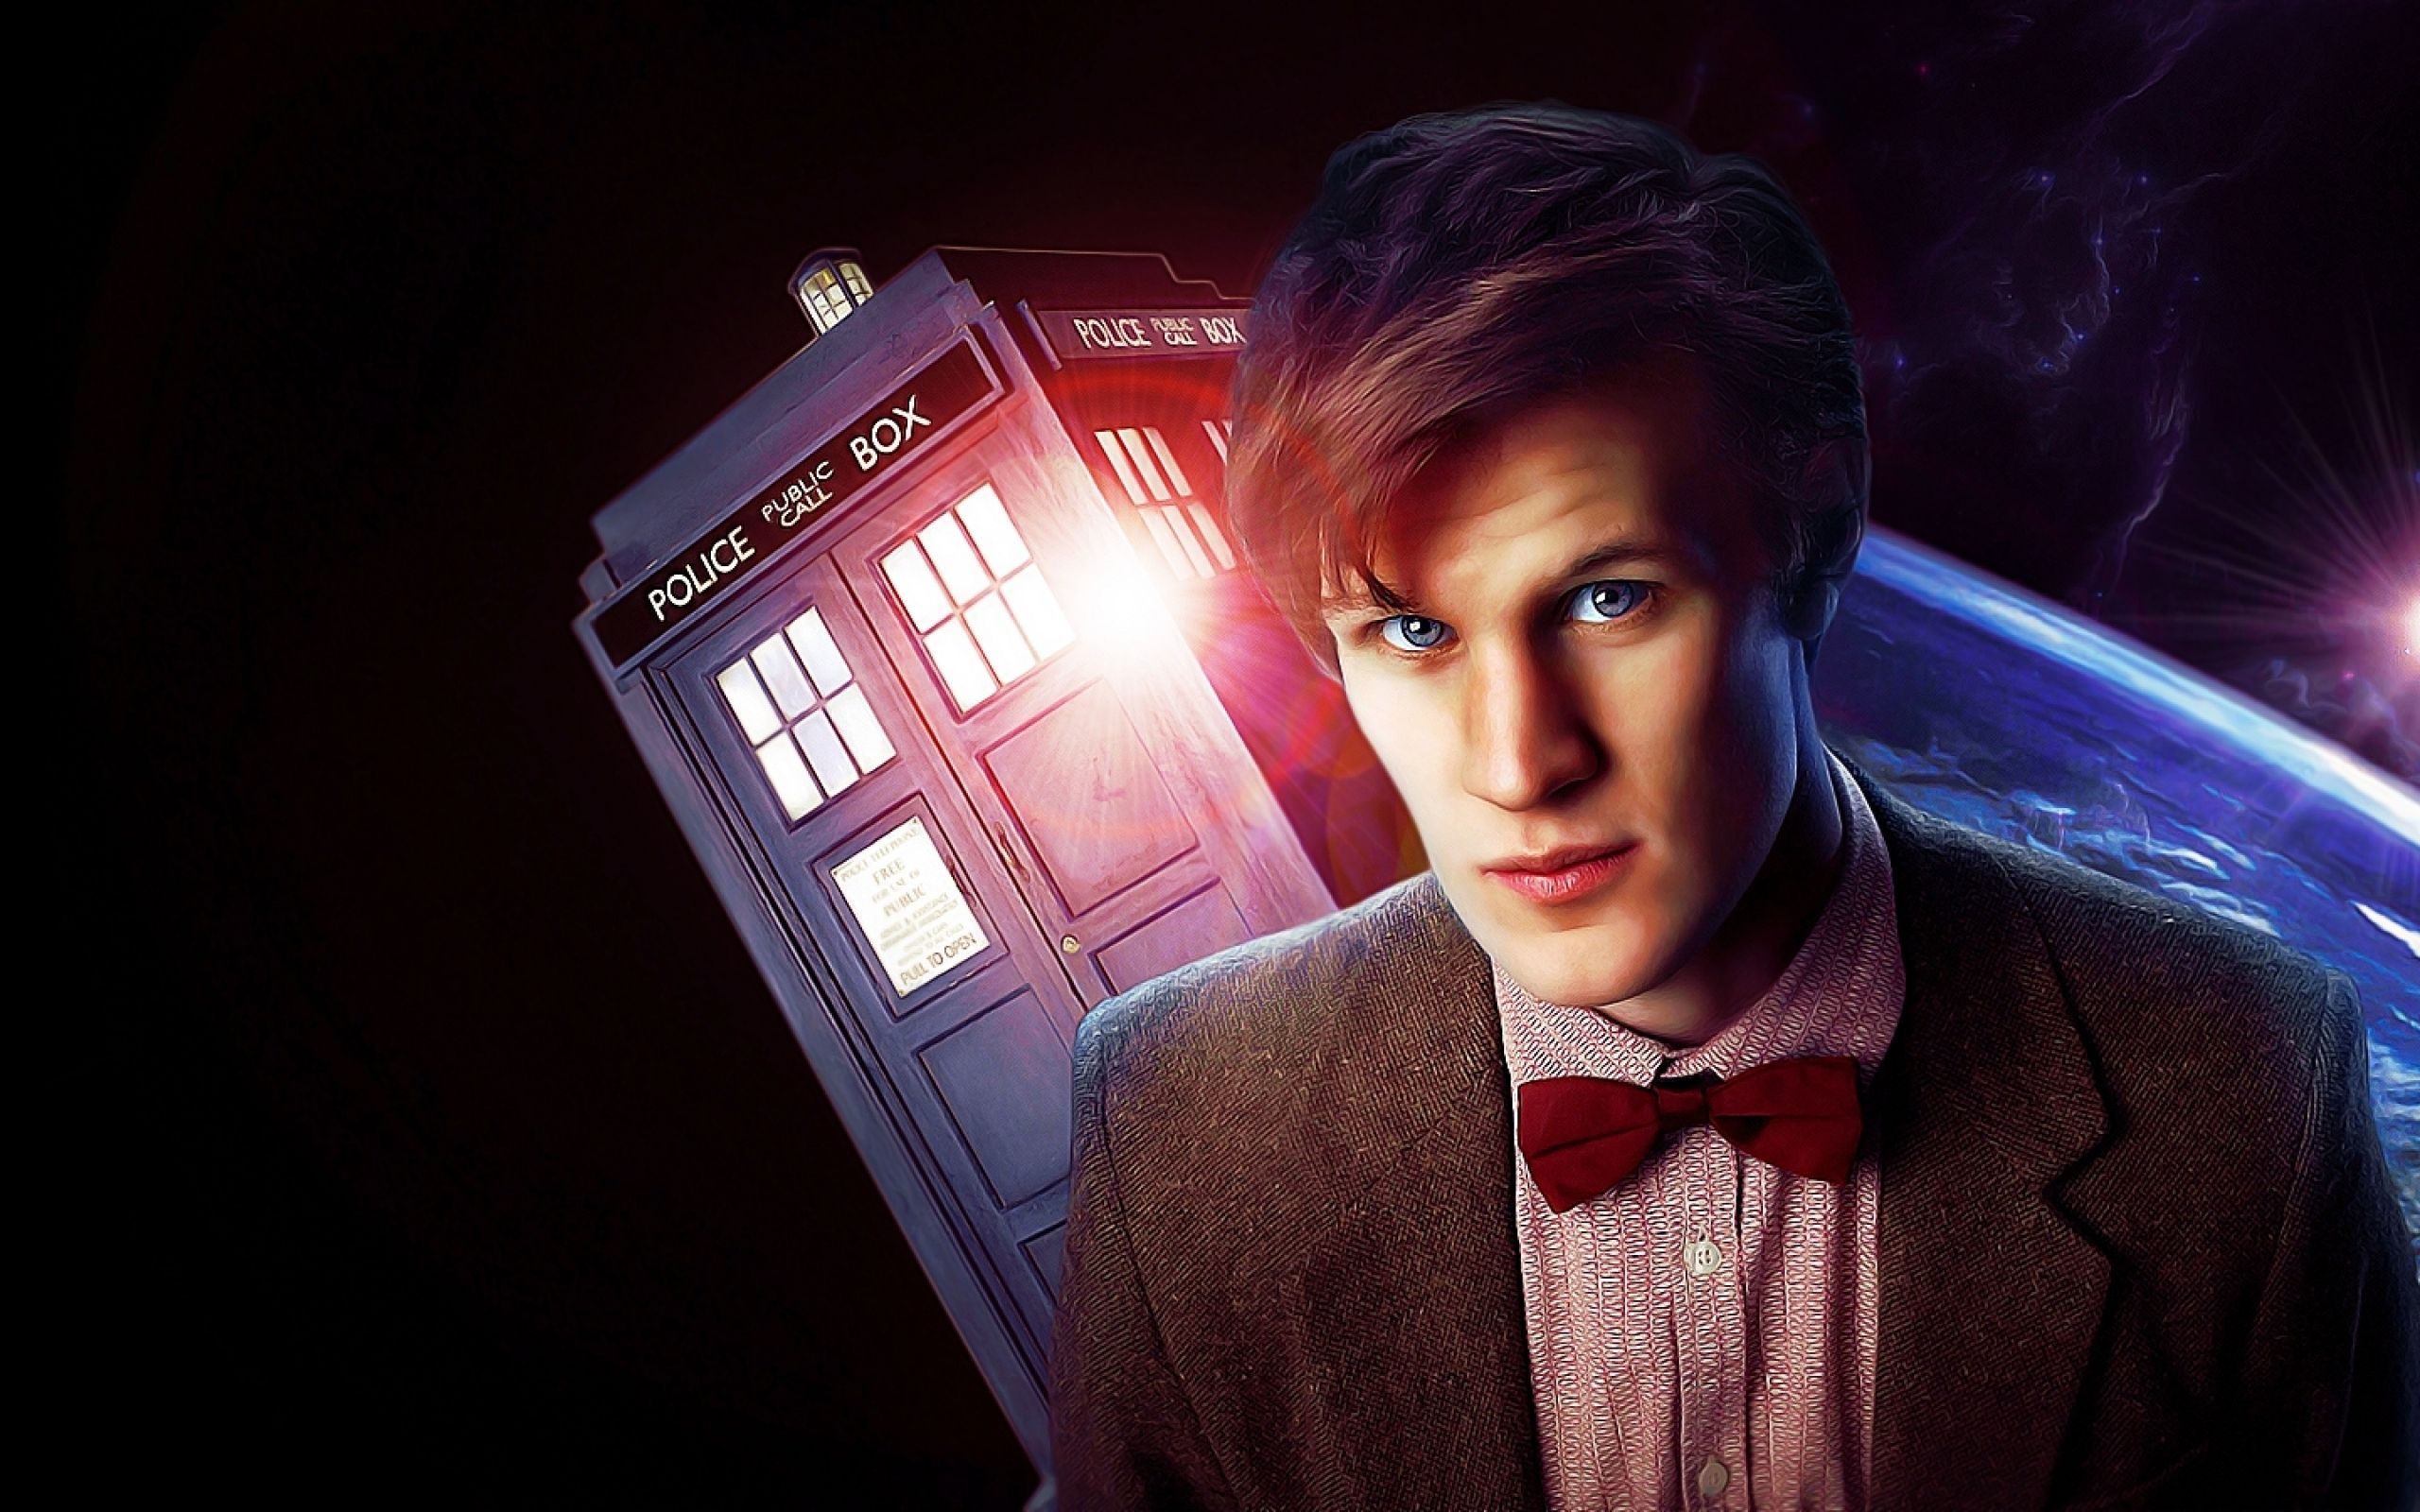 Tardis Matt Smith Eleventh Doctor Doctor Who 1600x900 Wallpaper